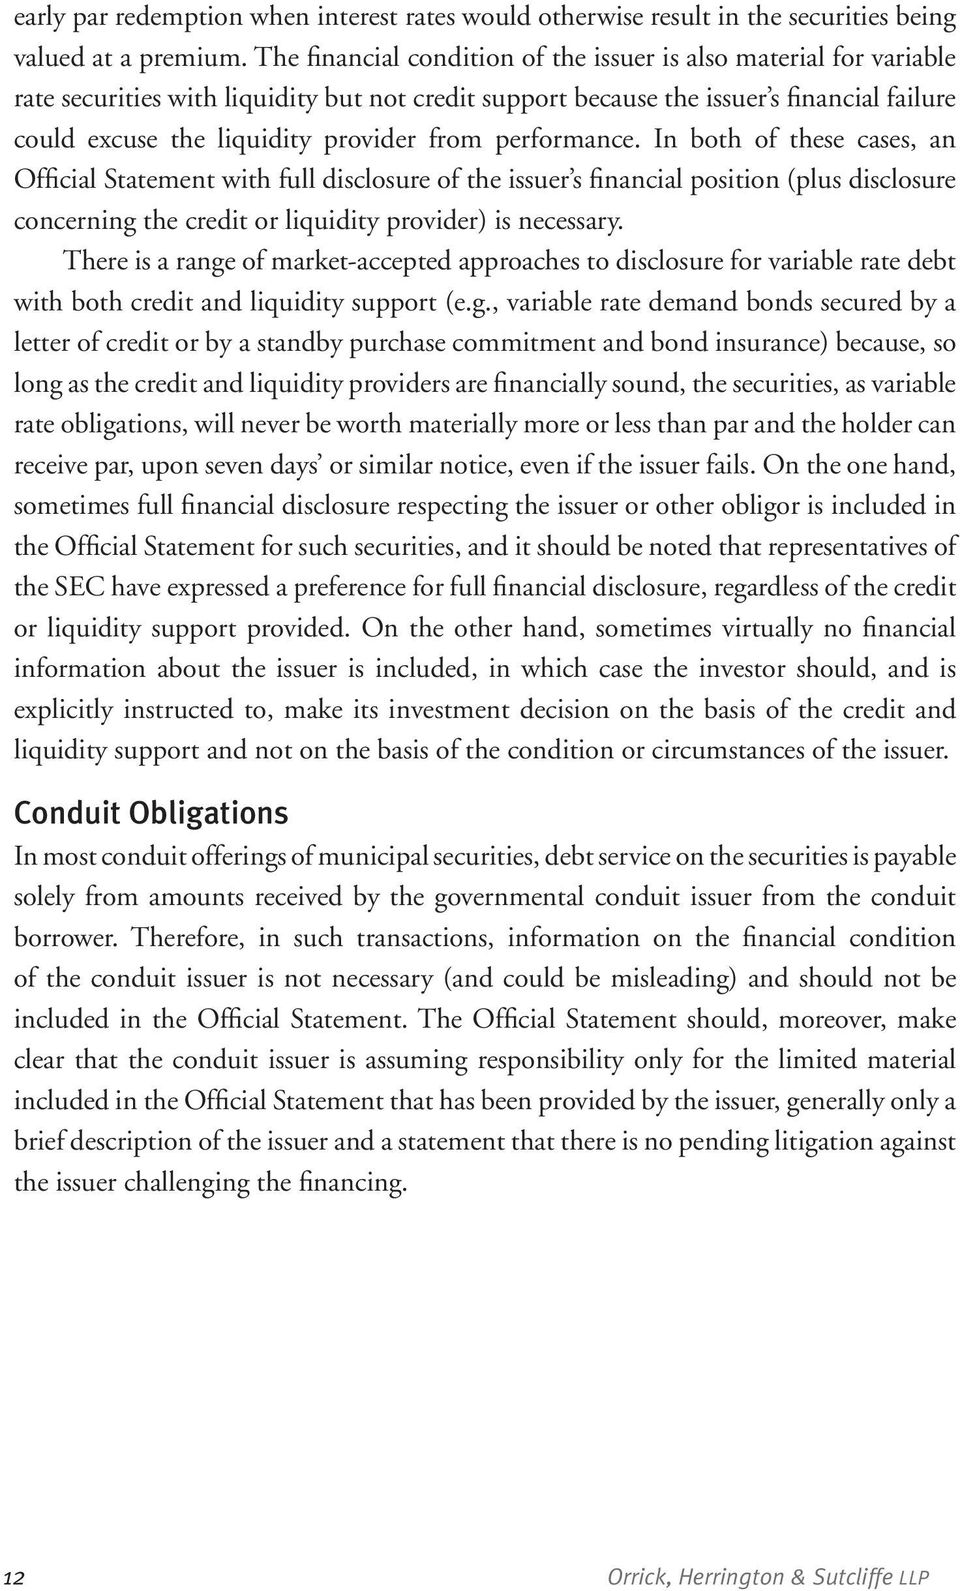 from performance. In both of these cases, an Official Statement with full disclosure of the issuer s financial position (plus disclosure concerning the credit or liquidity provider) is necessary.